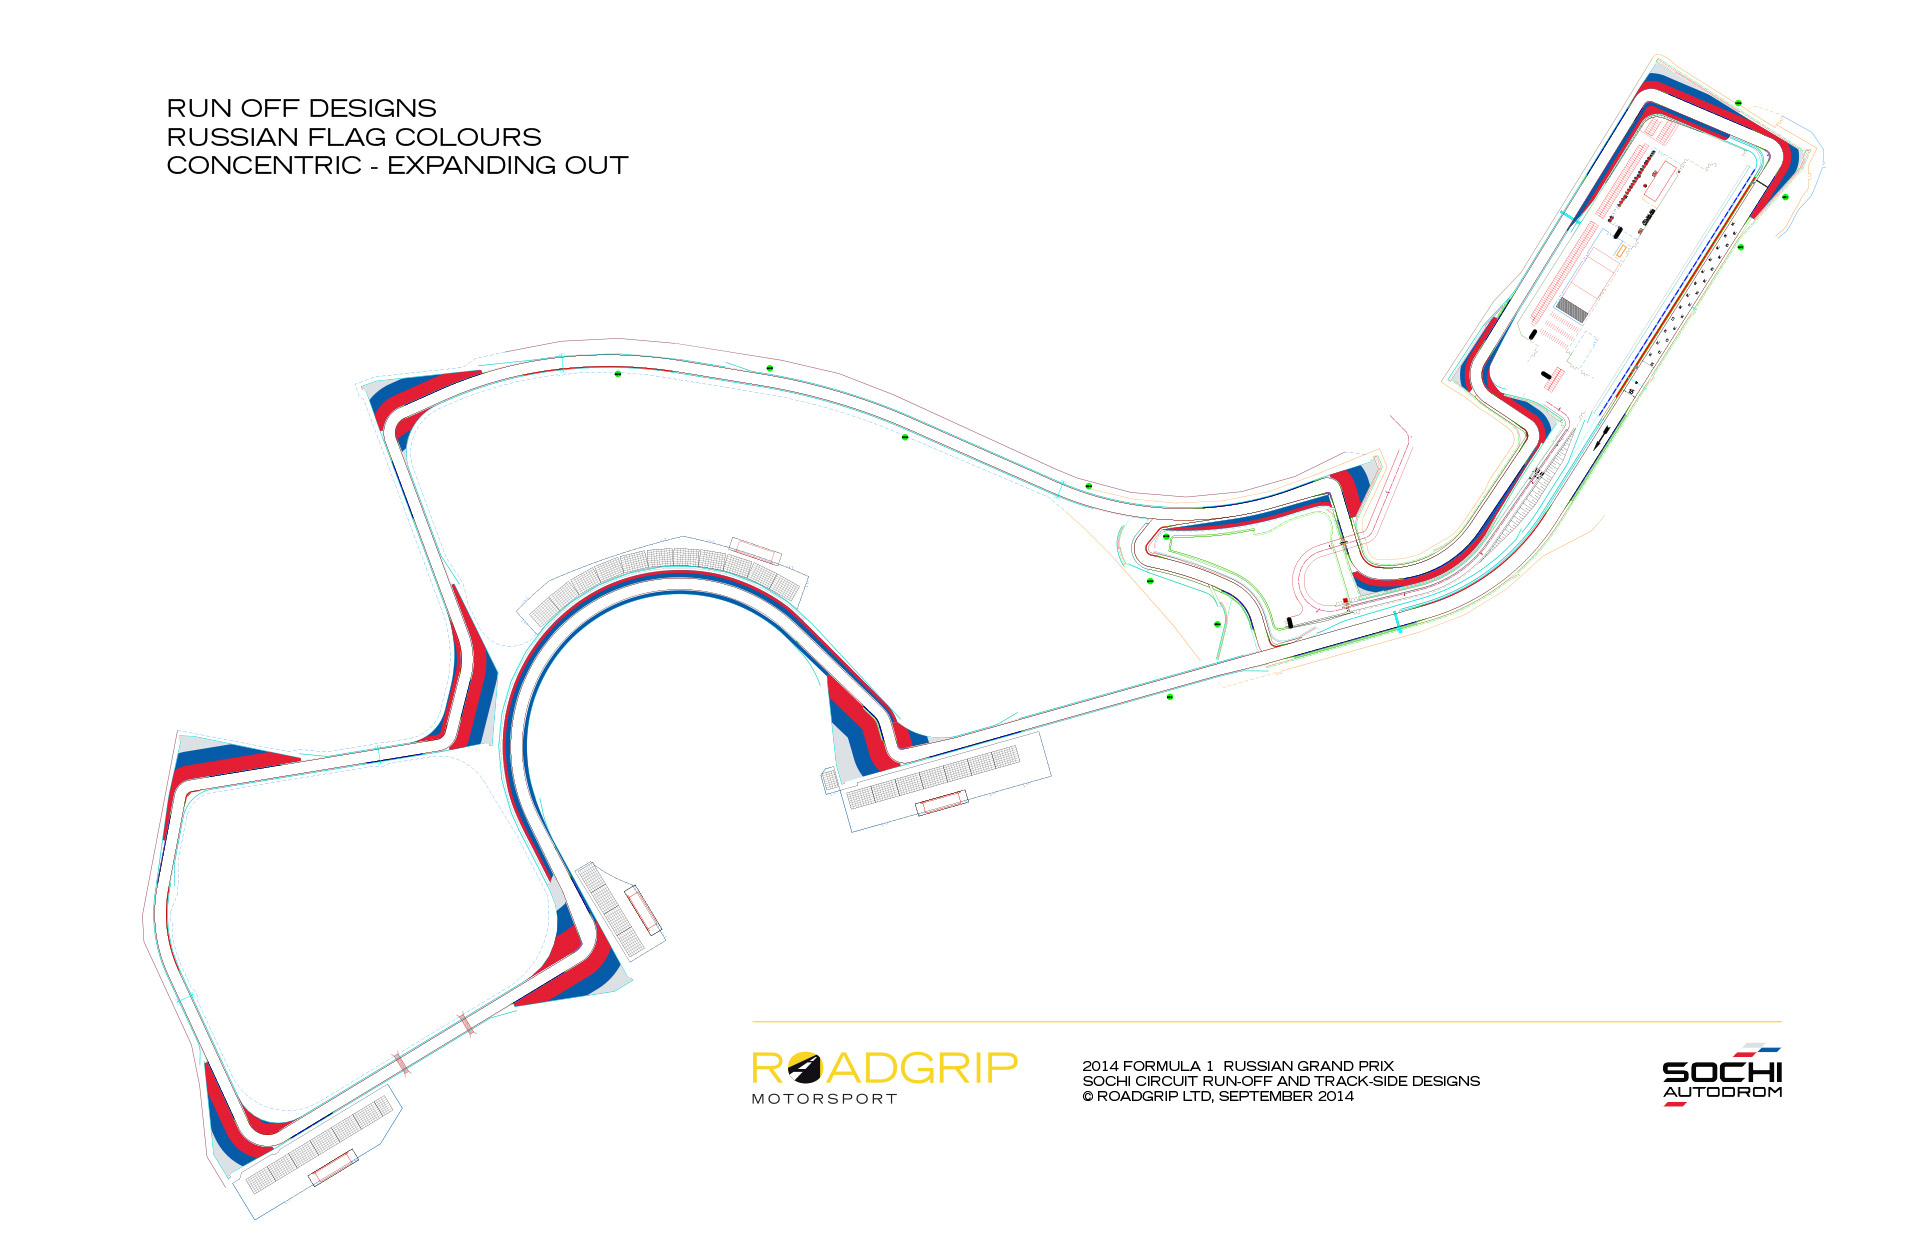 Sochi Autodrom Formula 1 Circuit Markings Design Sam Cranwell Diagrams Visualisation And Of Run Off Area Graphics Track Edges For Autodroms First Hosting The Grand Prix